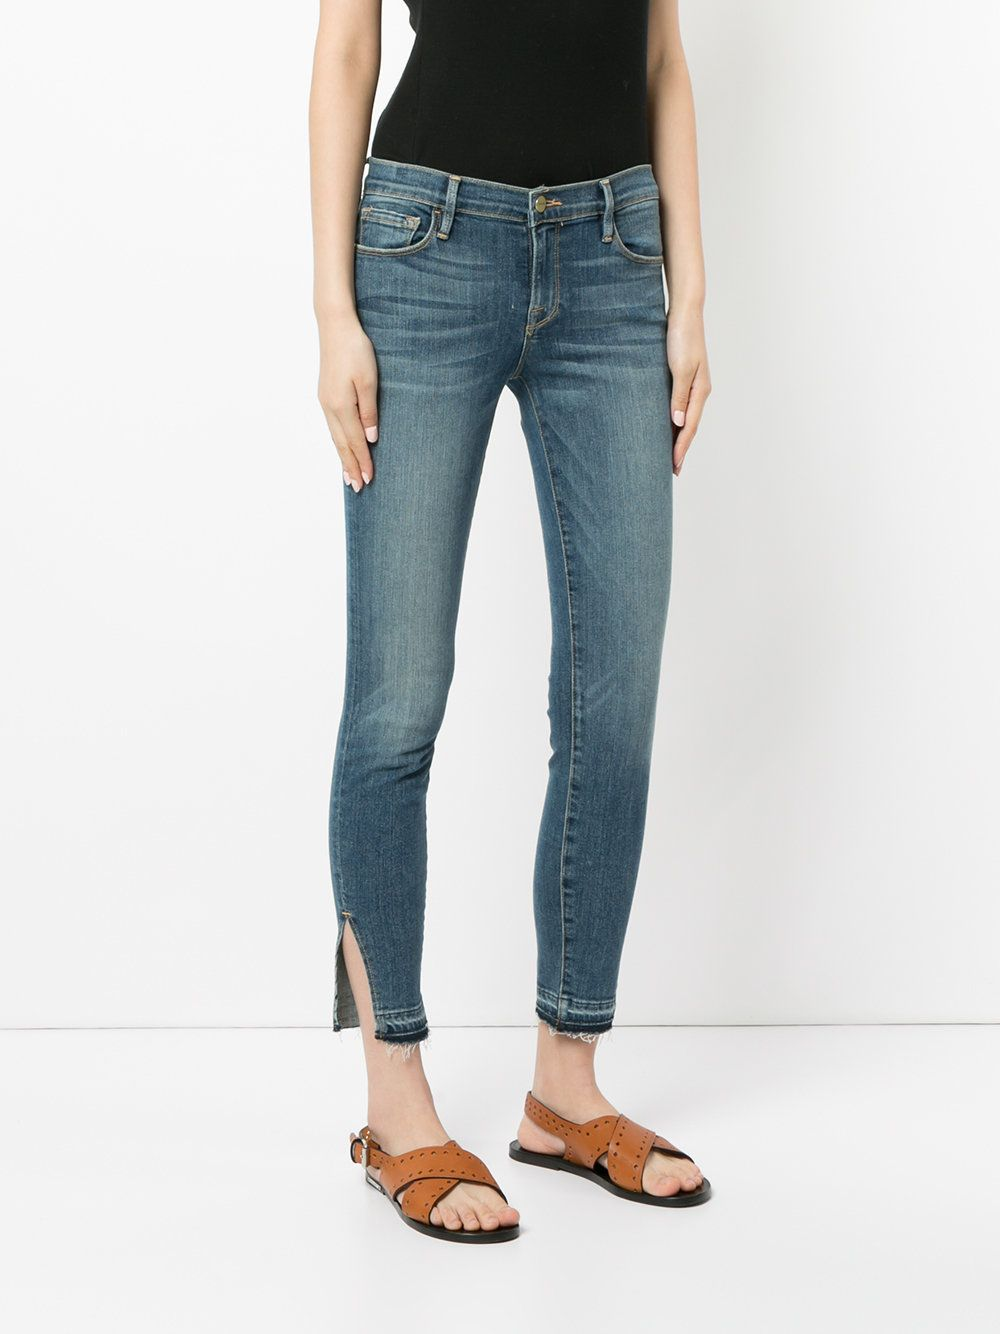 Le Skinny raw triangle cut jeans - Blue Frame Denim Classic ax3Kd